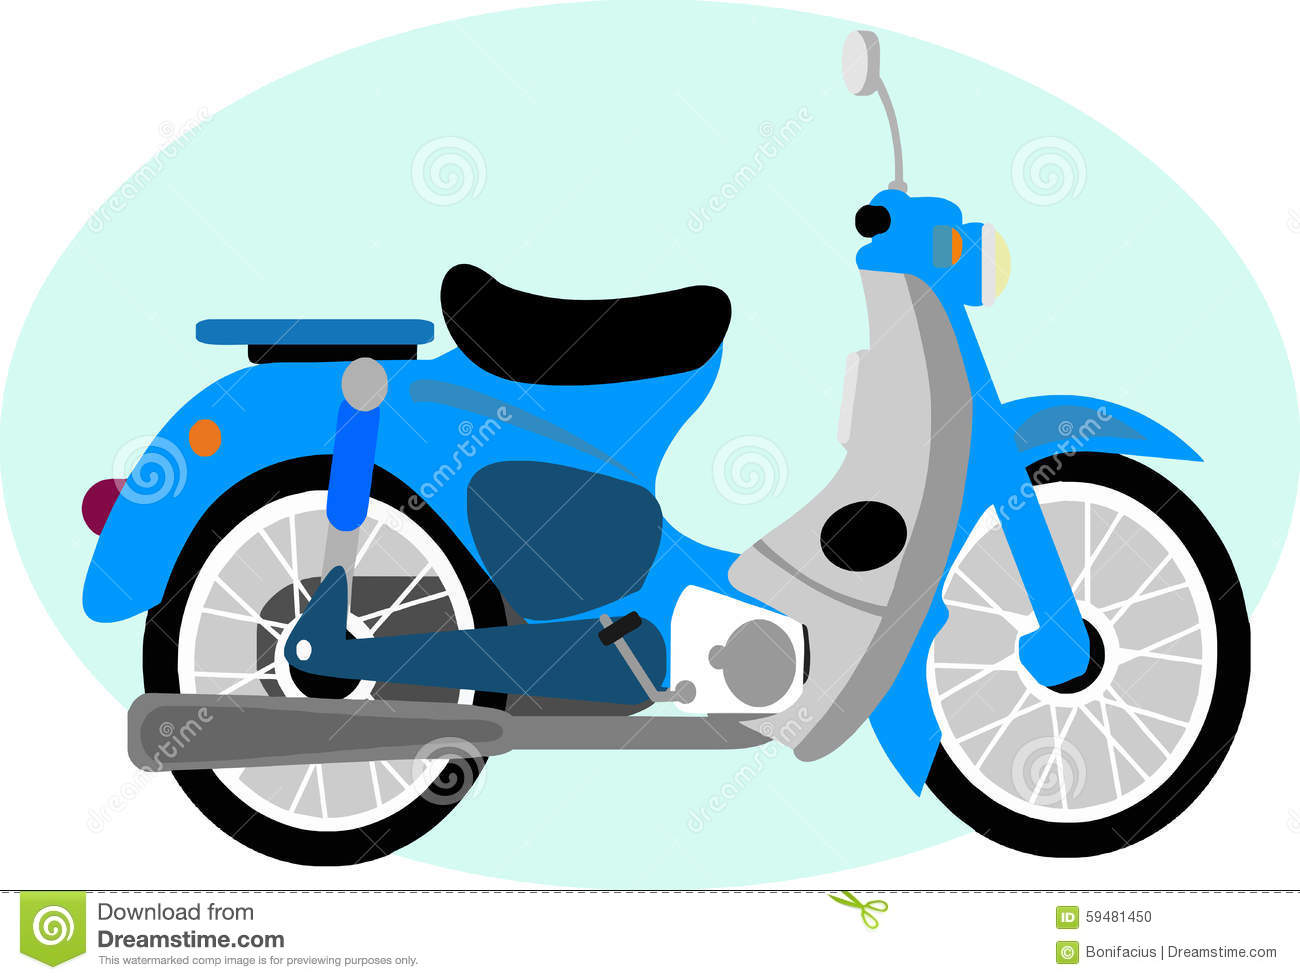 cute antique motorcycle cartoon stock illustration illustration of rh dreamstime com clip art motorcycles sunset clip art motorcycles sunset